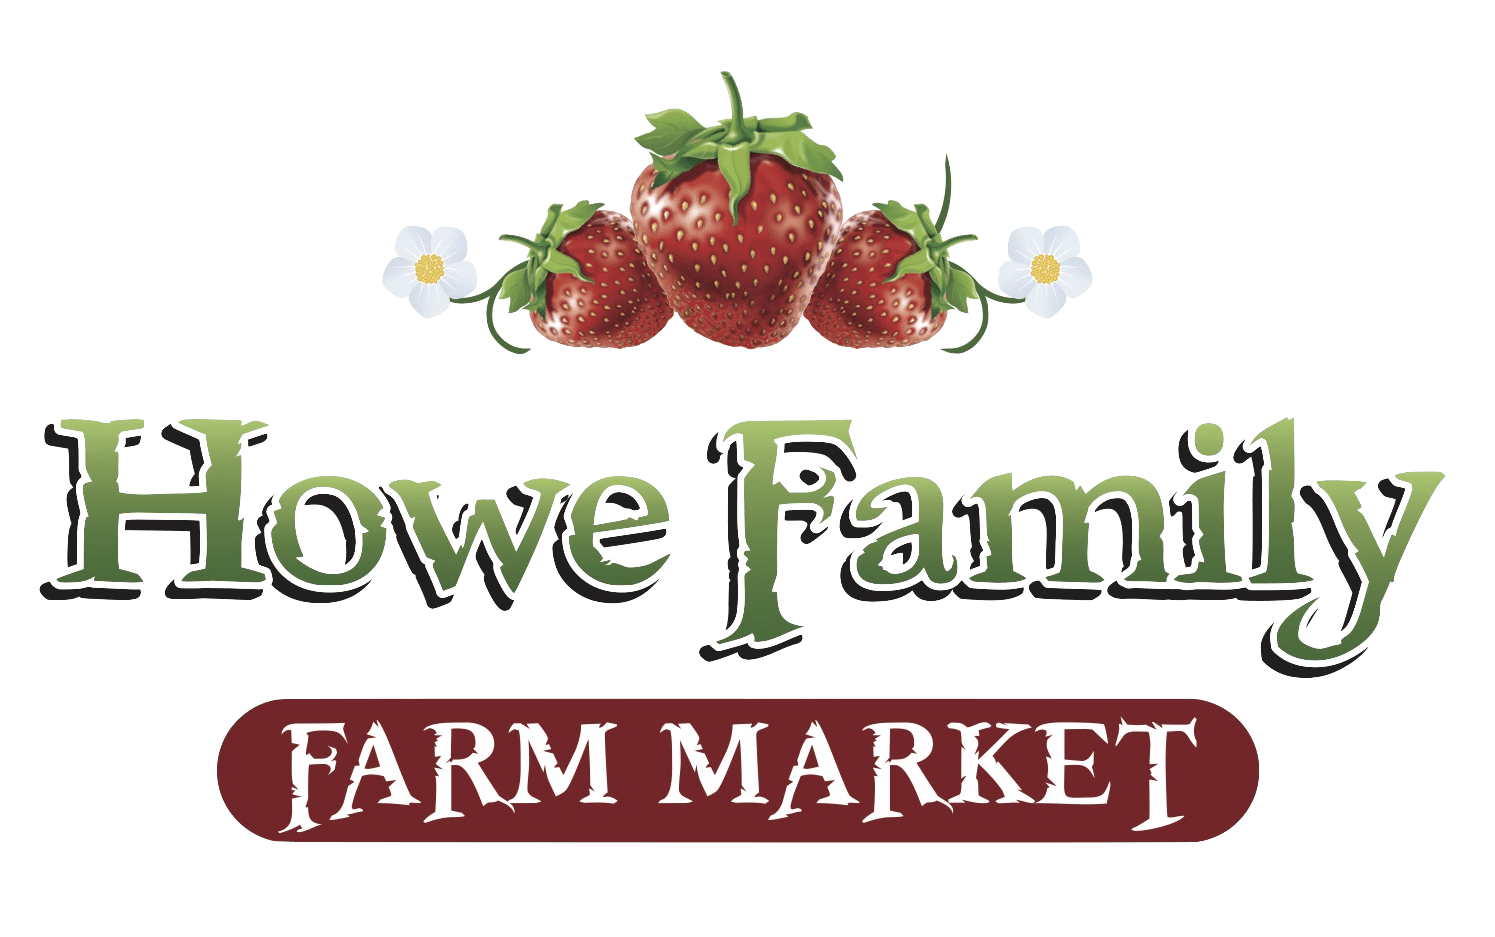 Howe Family Farm Market